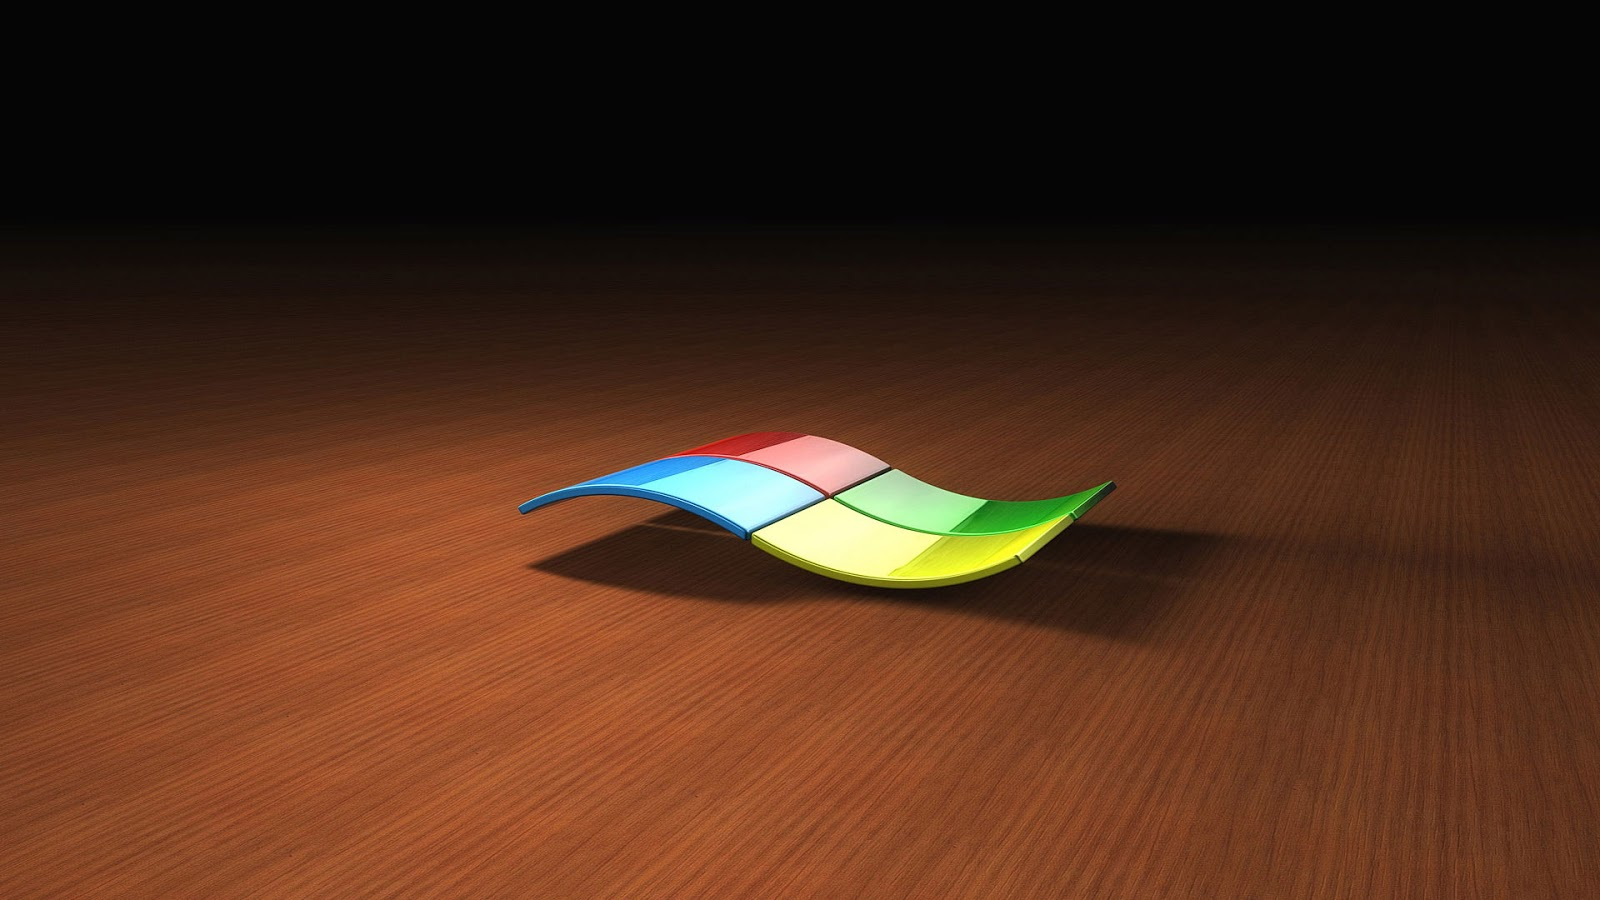 Windows 7 Fly 3D Wallpaper Wallpaper